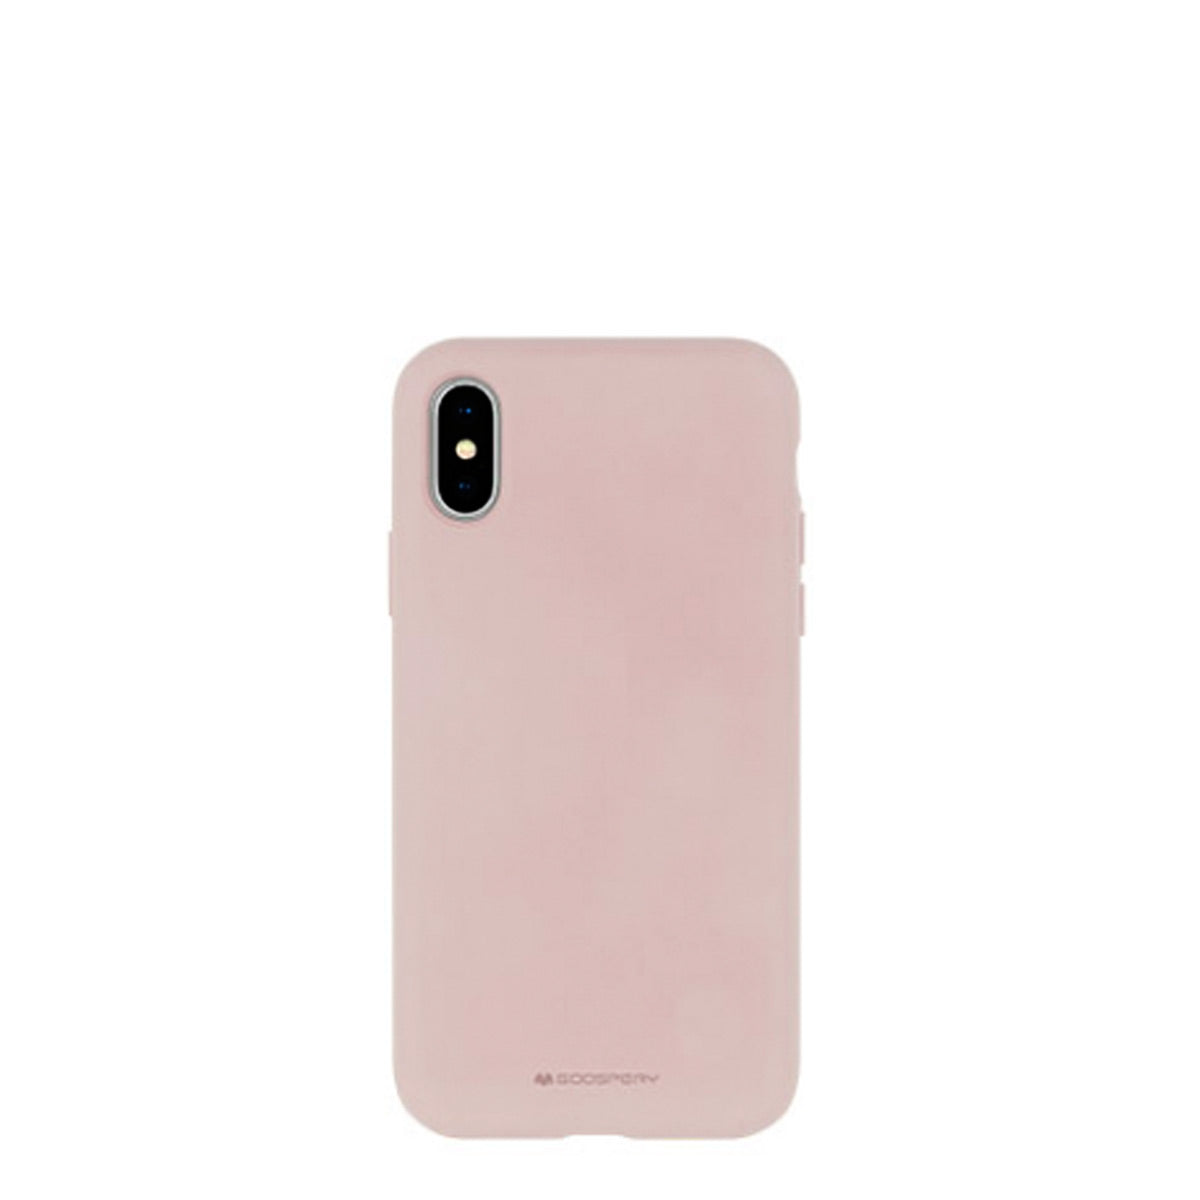 Capa de Smartphone Mercury Silicone Cover Apple iPhone 6, 6s Rosa Areia